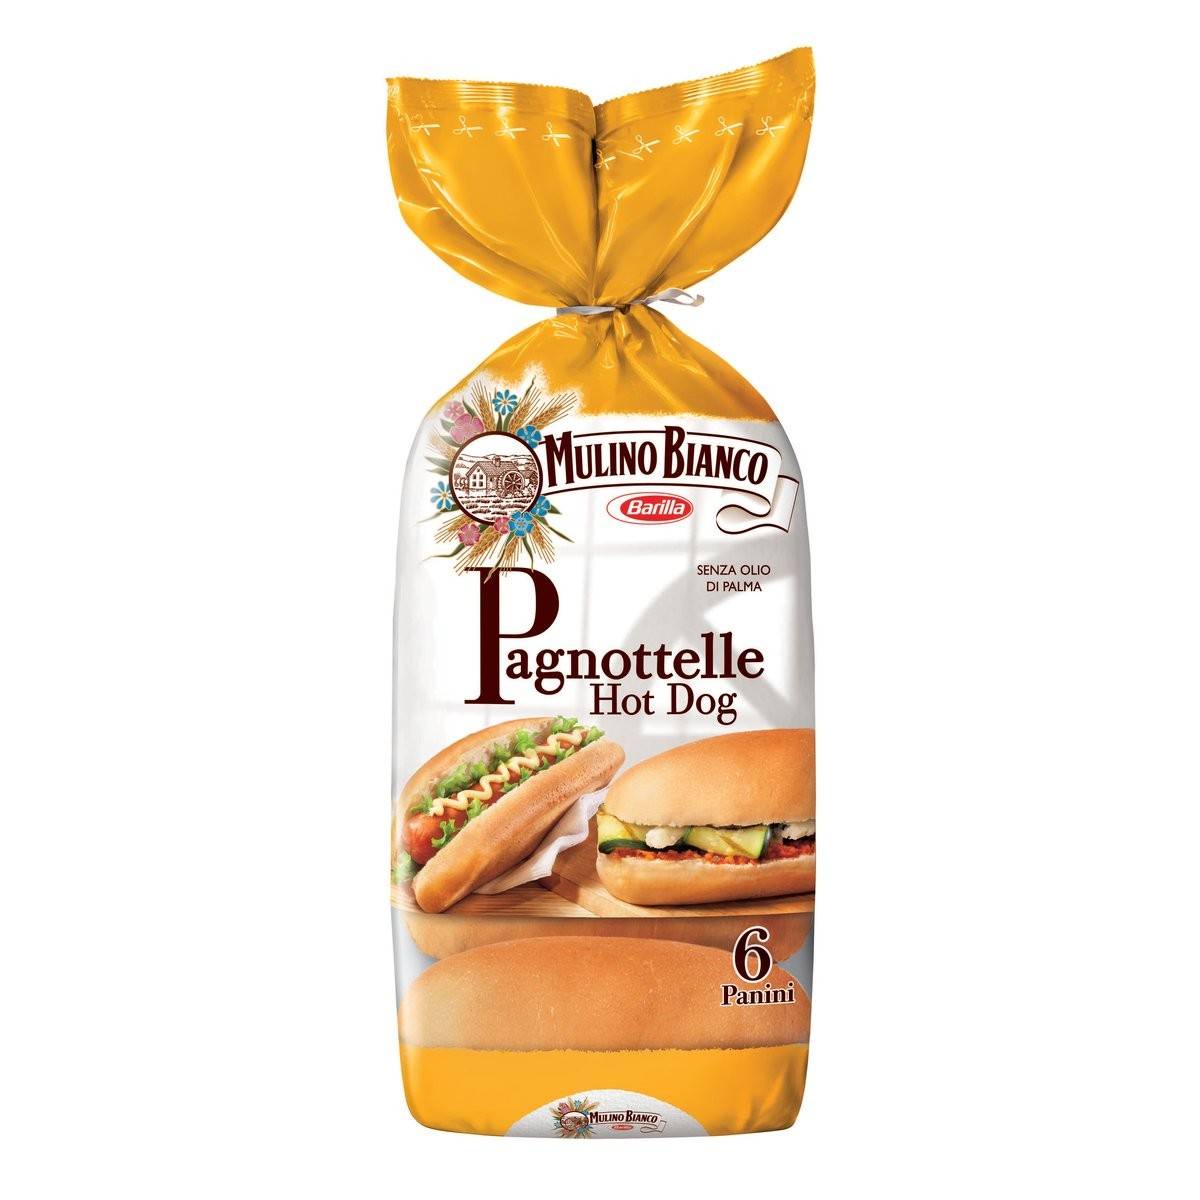 Pagnottelle